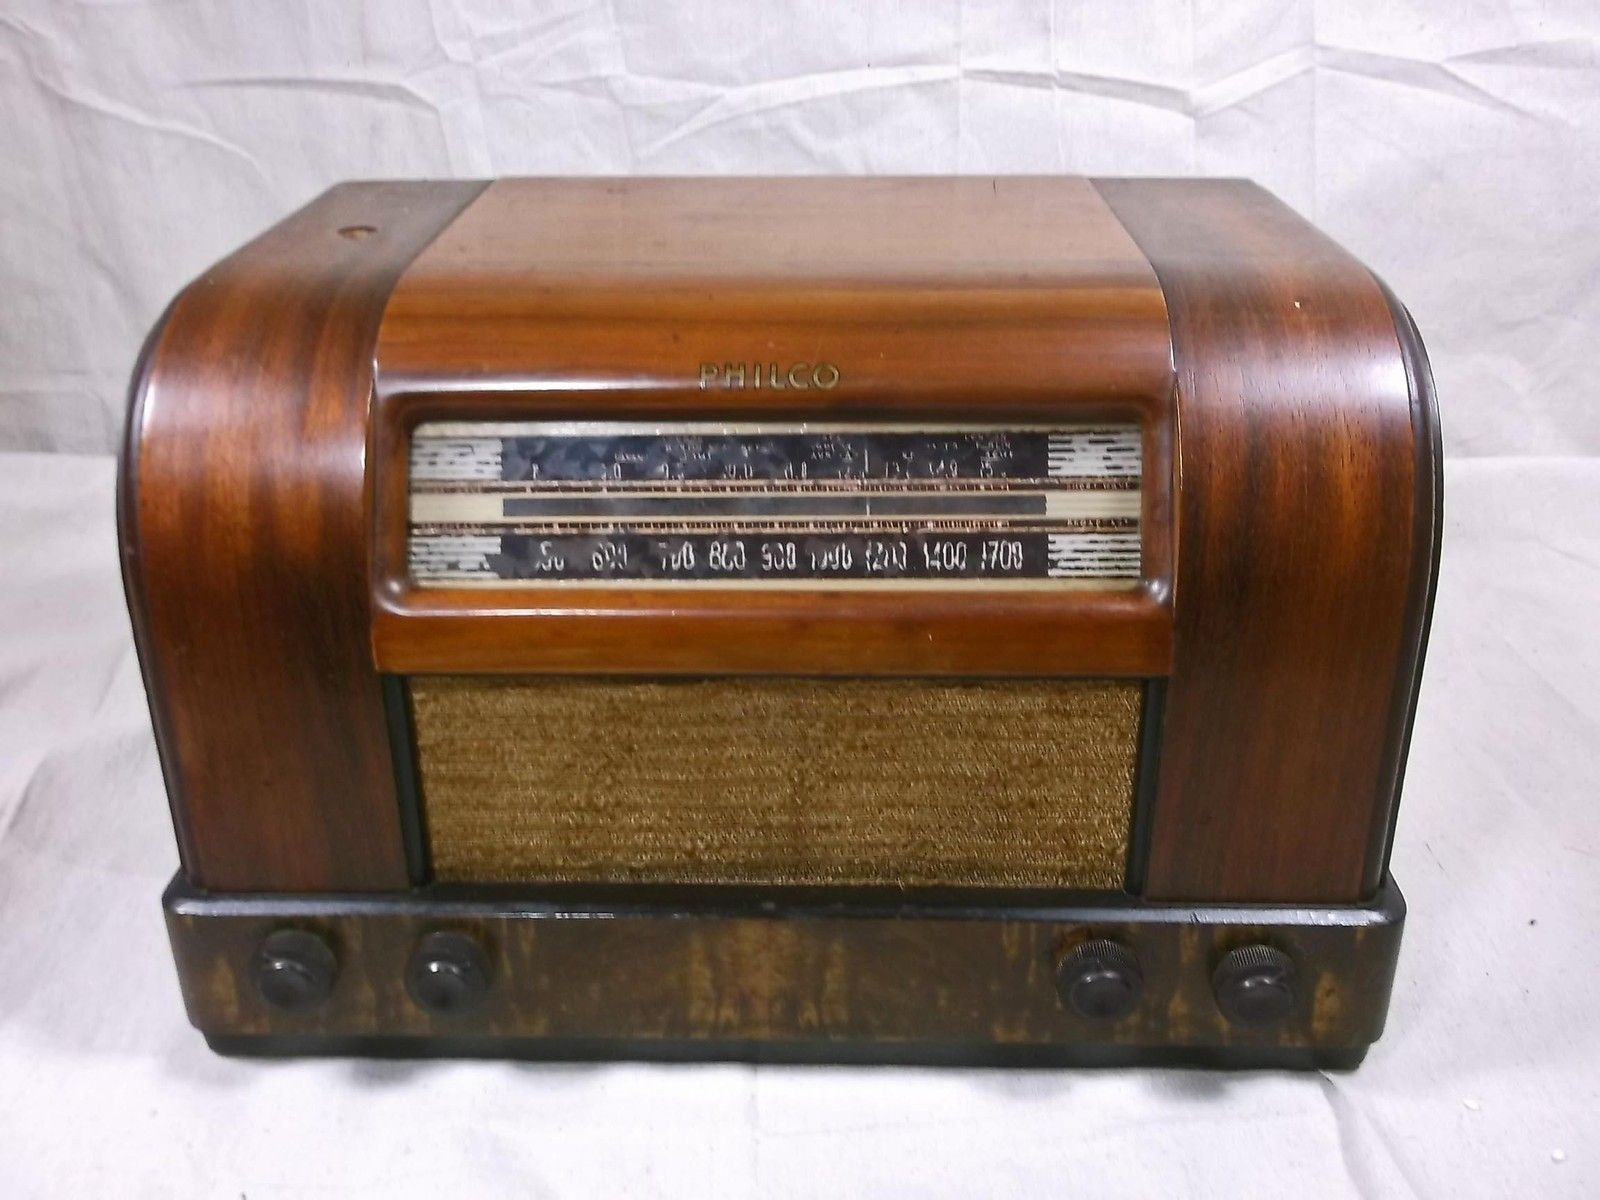 Vintage 1942 Philco Tube Radio W Broadcast Short Wave IN Wooden